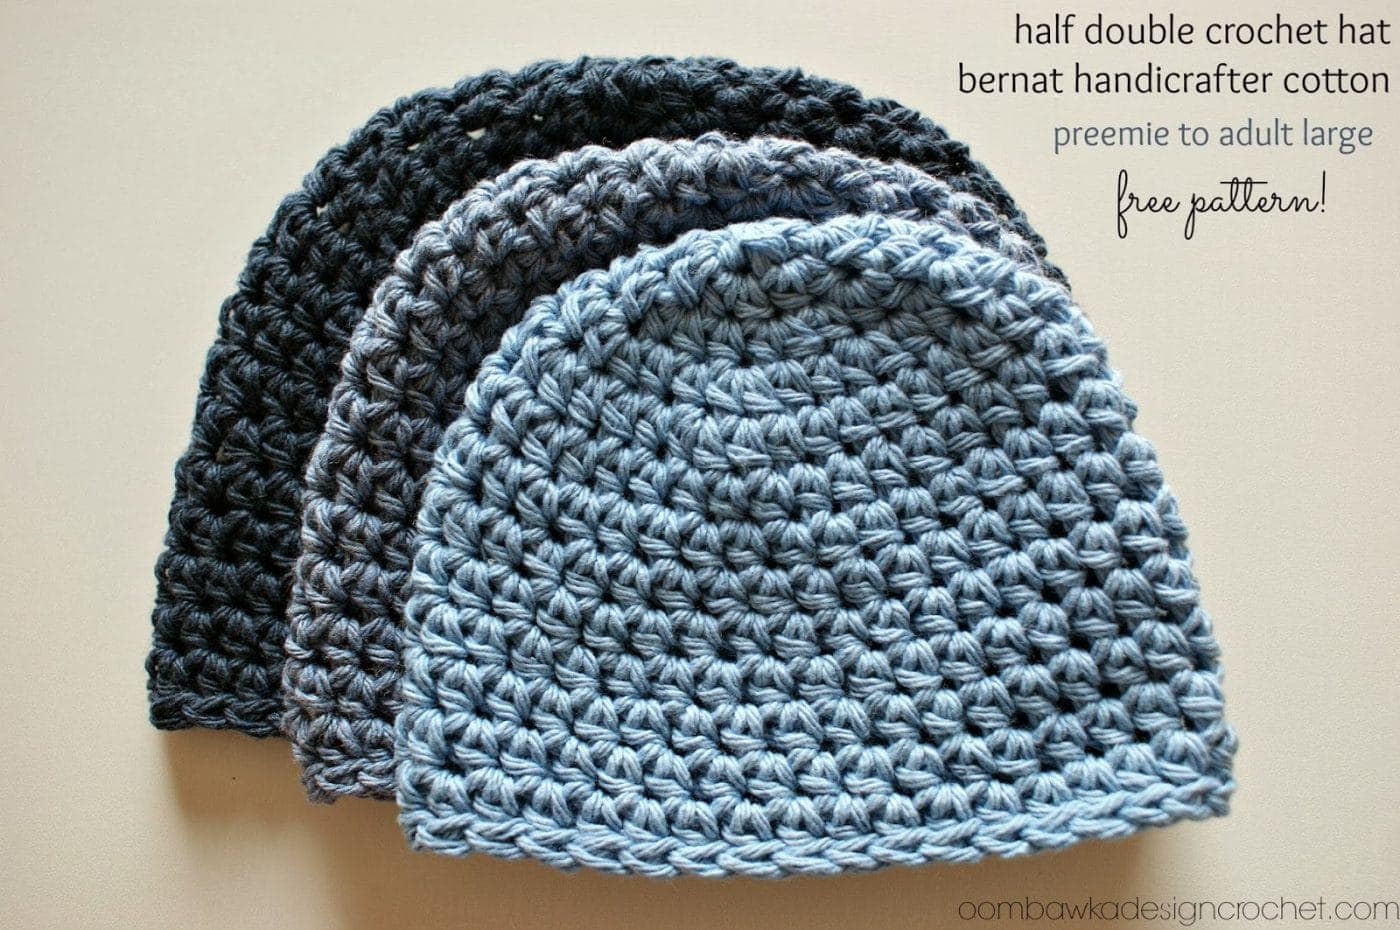 Crochet Patterns Hats : ... Double Crochet Hat Pattern #2 Free Pattern ? Oombawka Design Crochet